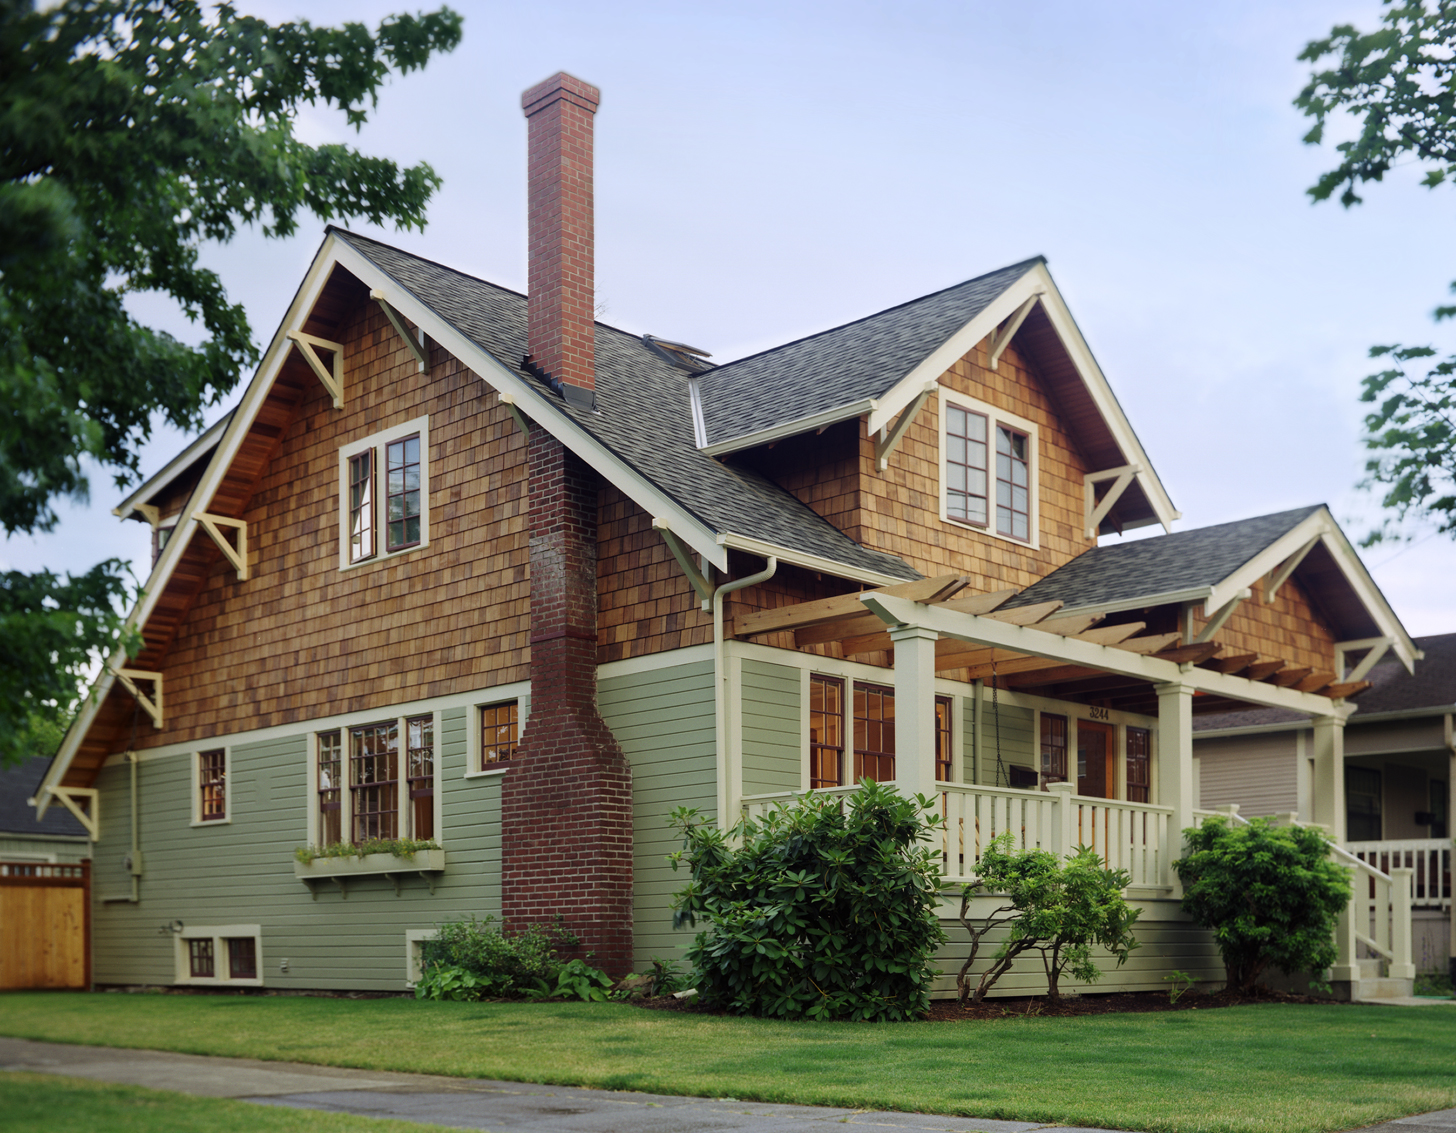 Seven home styles of the pacific northwest illustrated by for Exterior remodeling